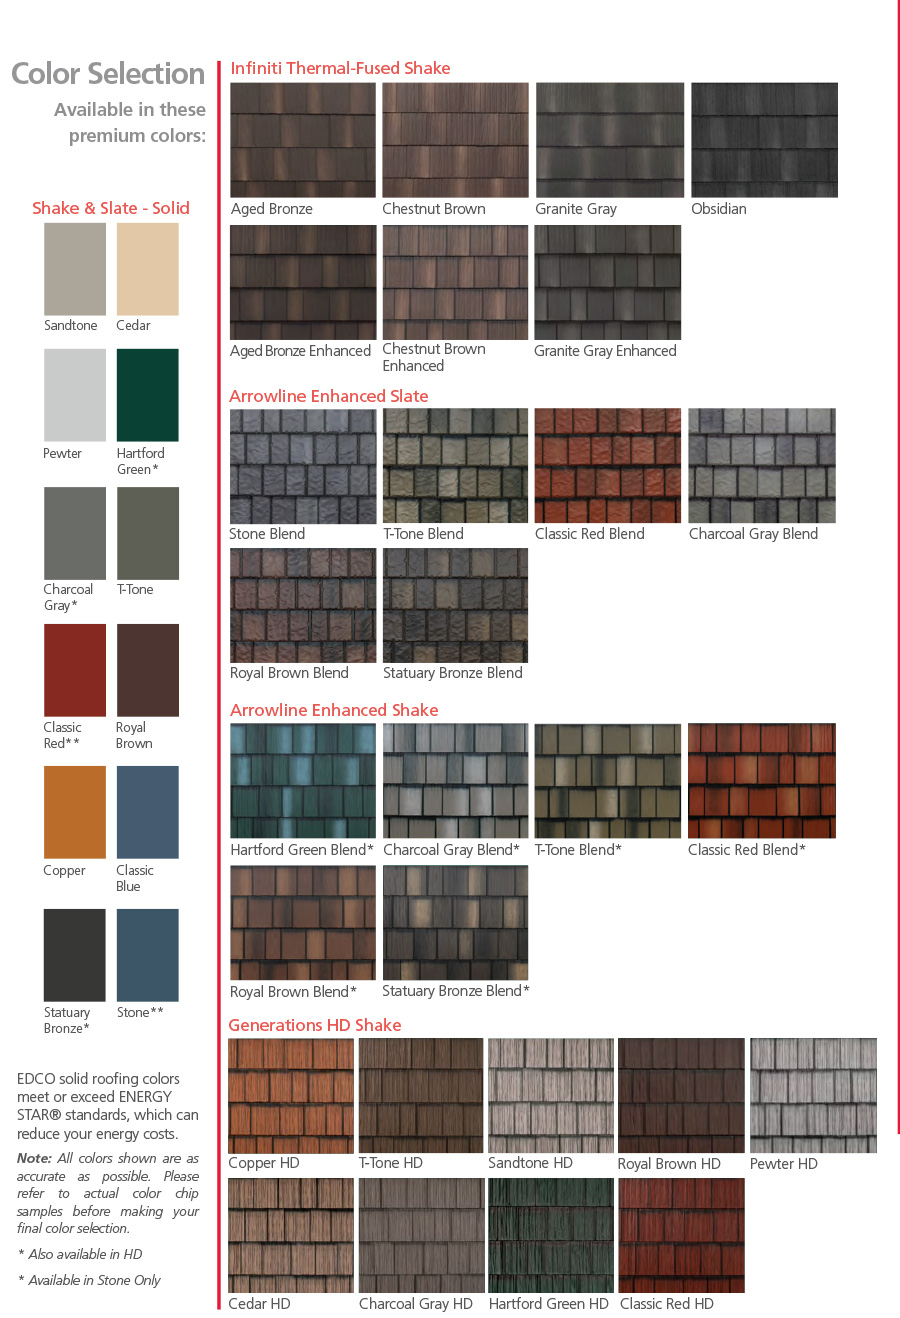 EDCO Solid Roofing Colors